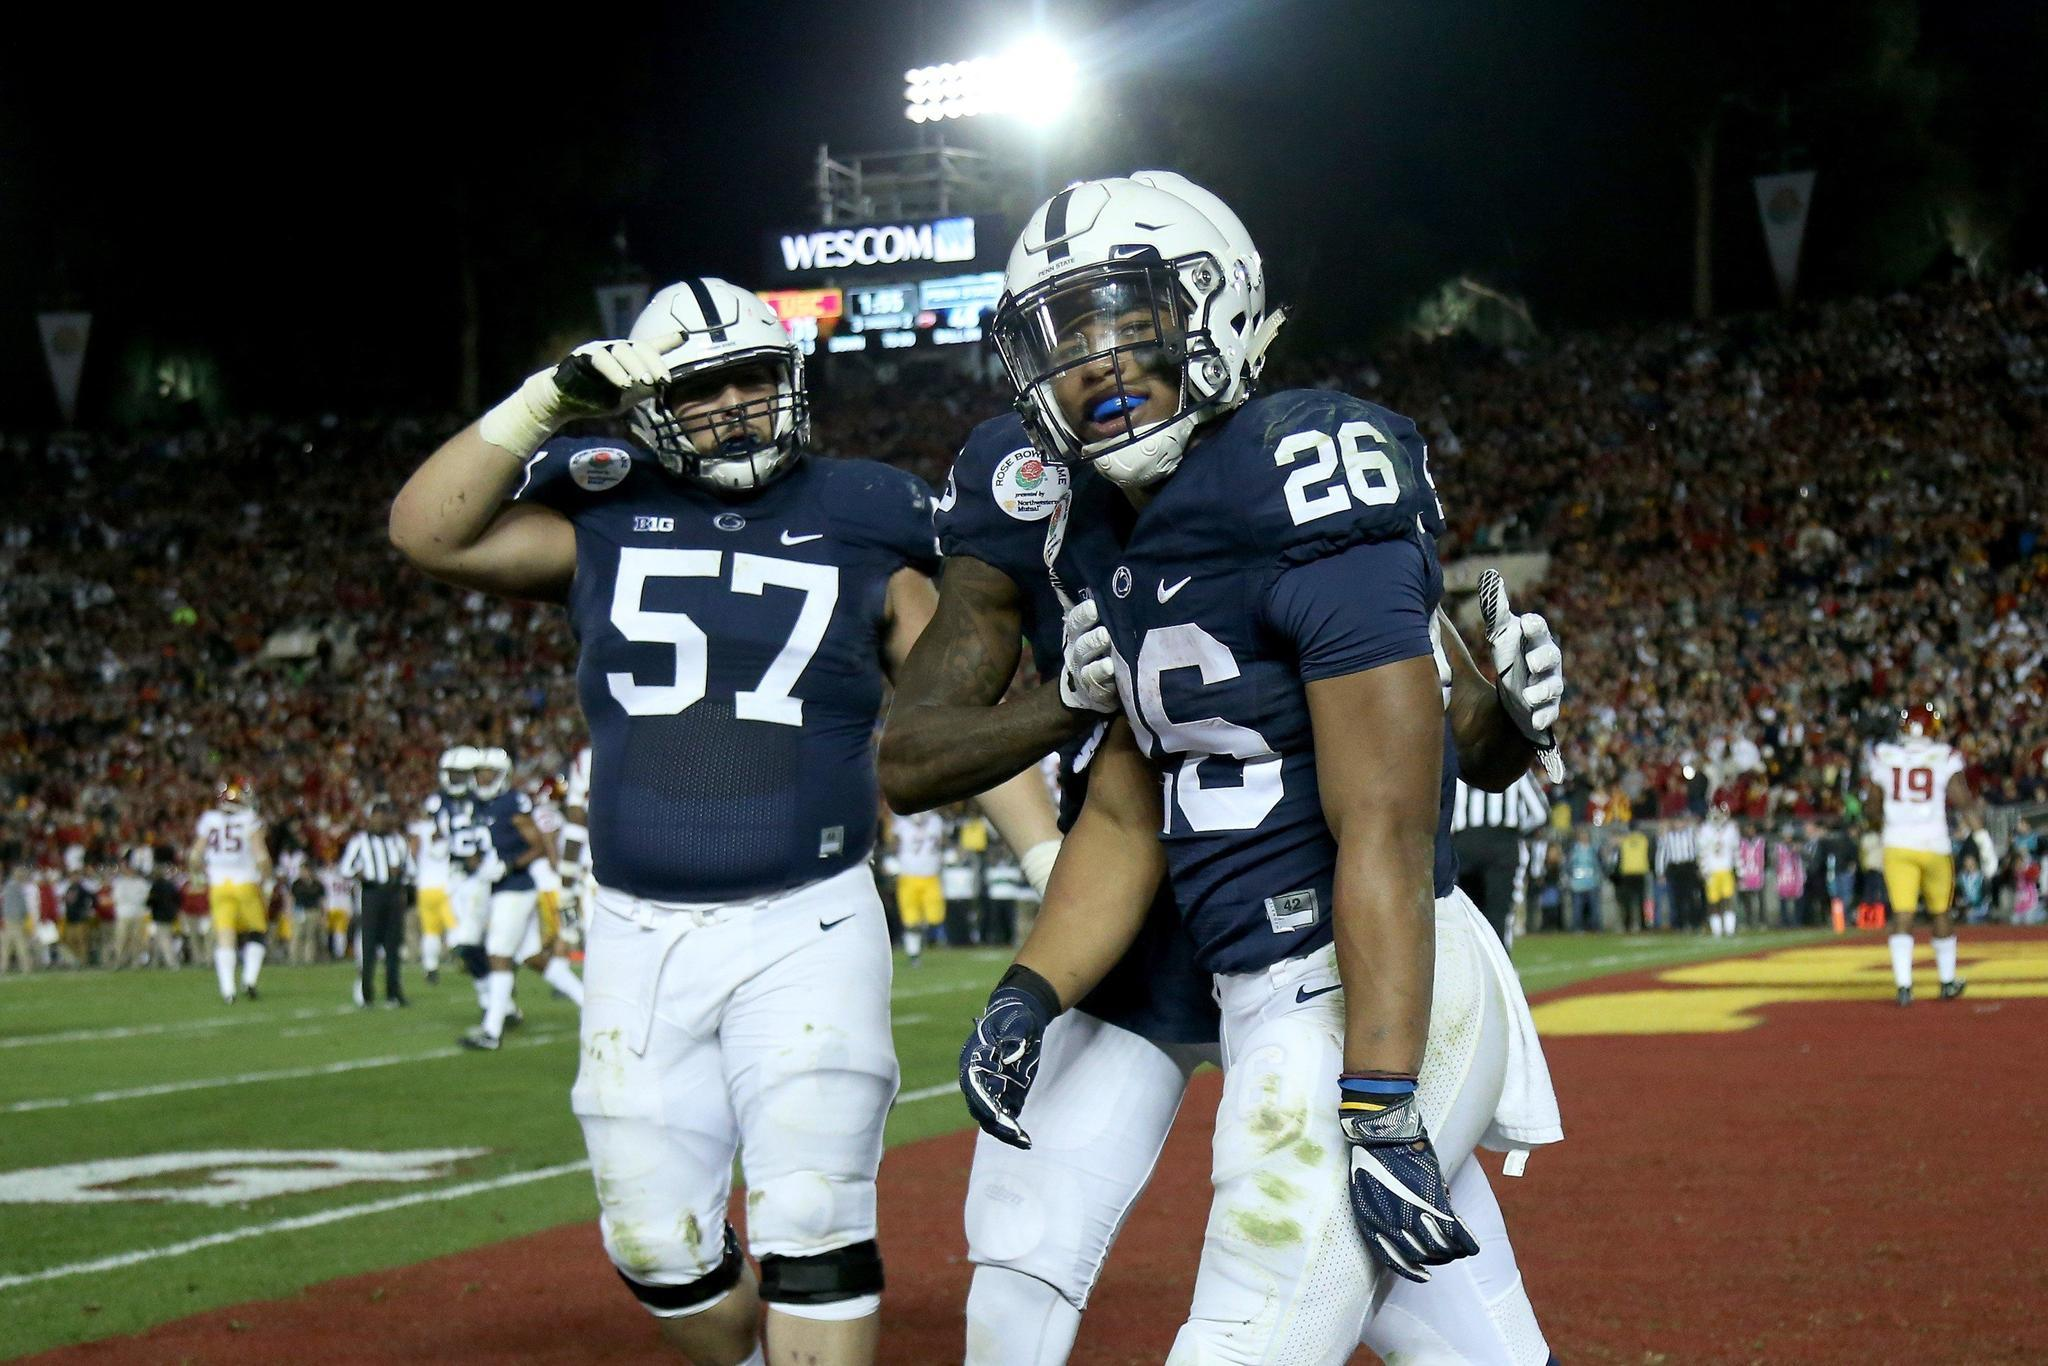 penn state Get the latest penn state nittany lions news, scores, stats, standings, rumors, and more from espn.